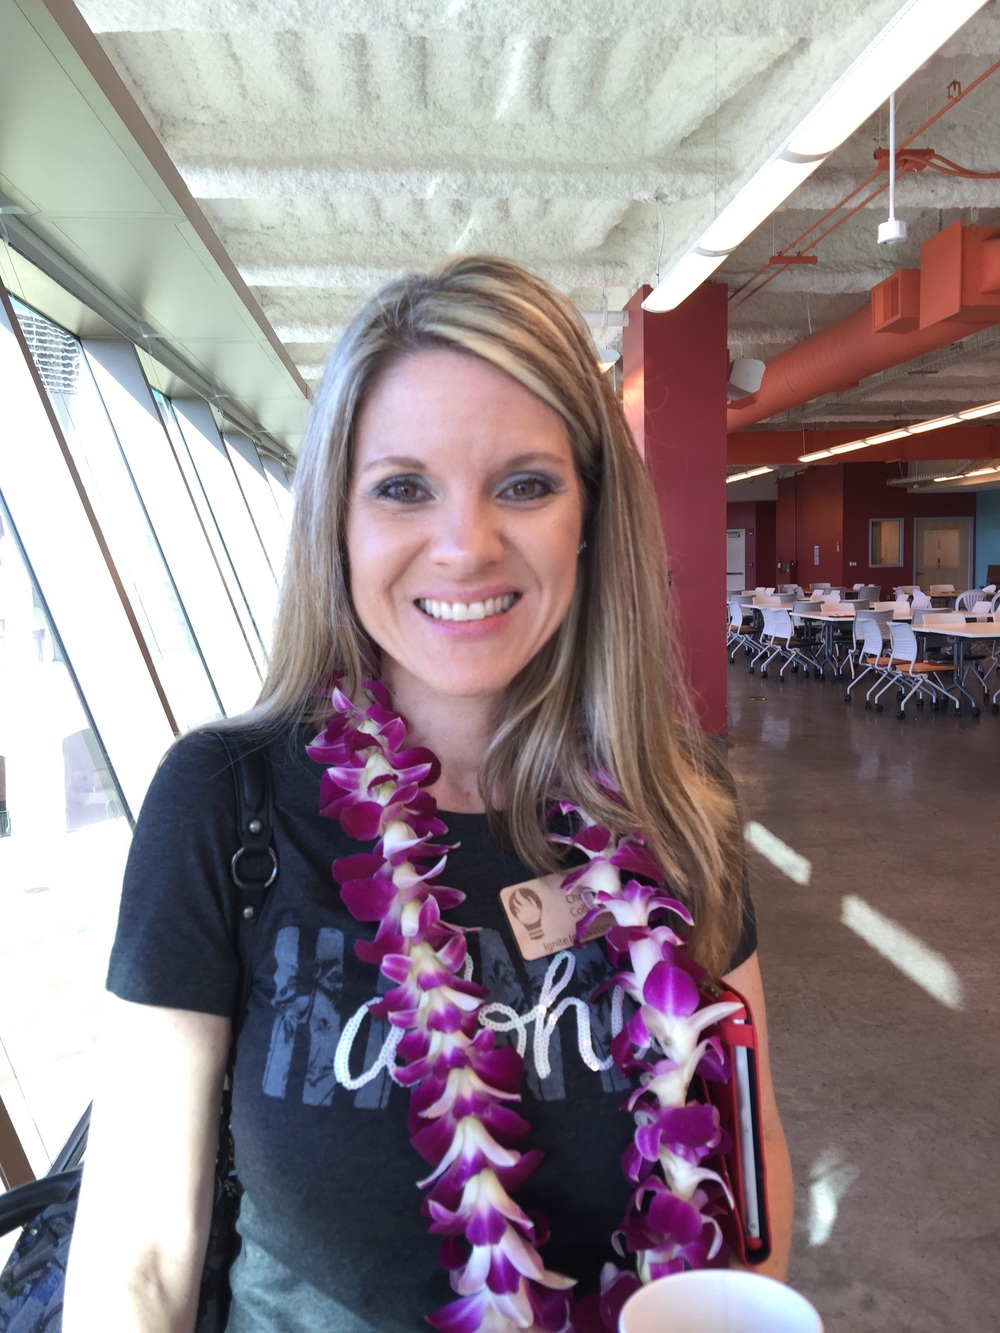 Check out the beautiful lei I was adorned with at the Ignite Iolani Conference.  This was such an amazing, fun-filled day!